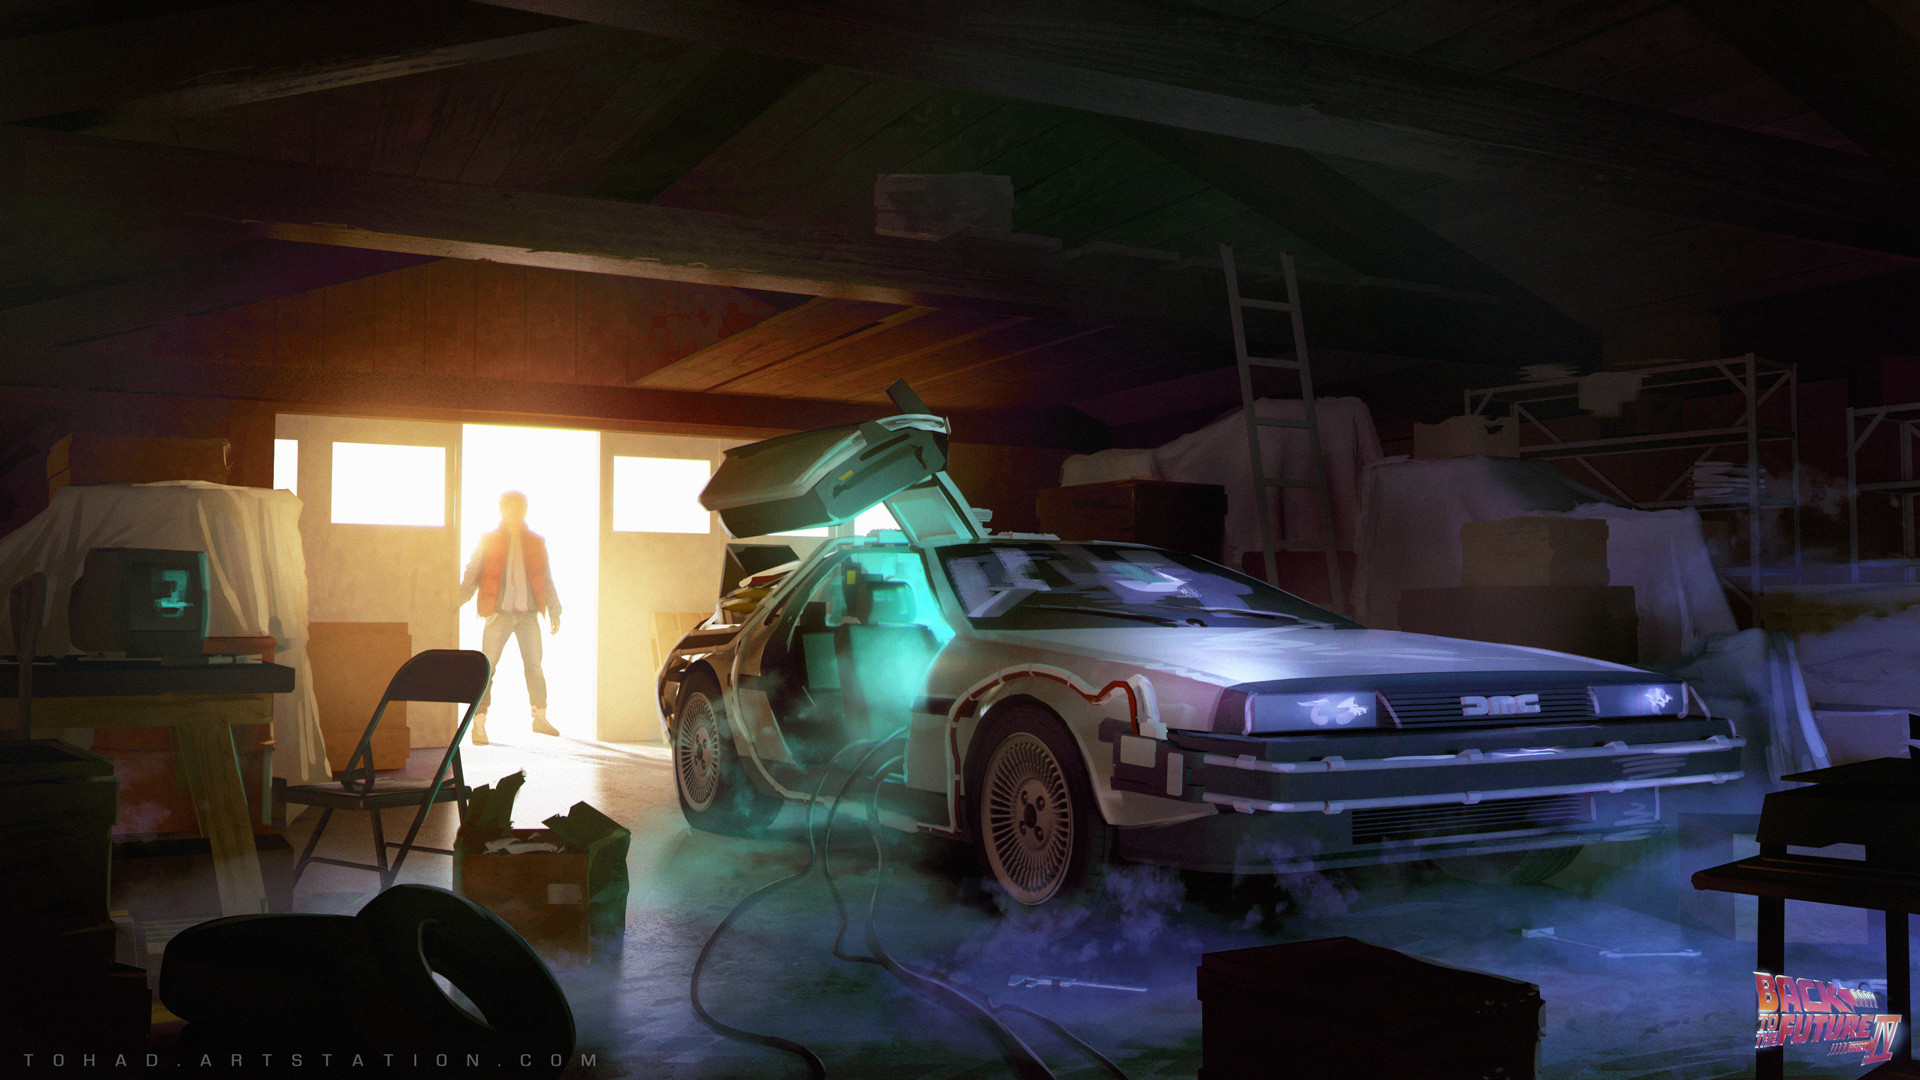 sylvain_sarrailh_digital_illustration_conceptart_car_backtothefuture